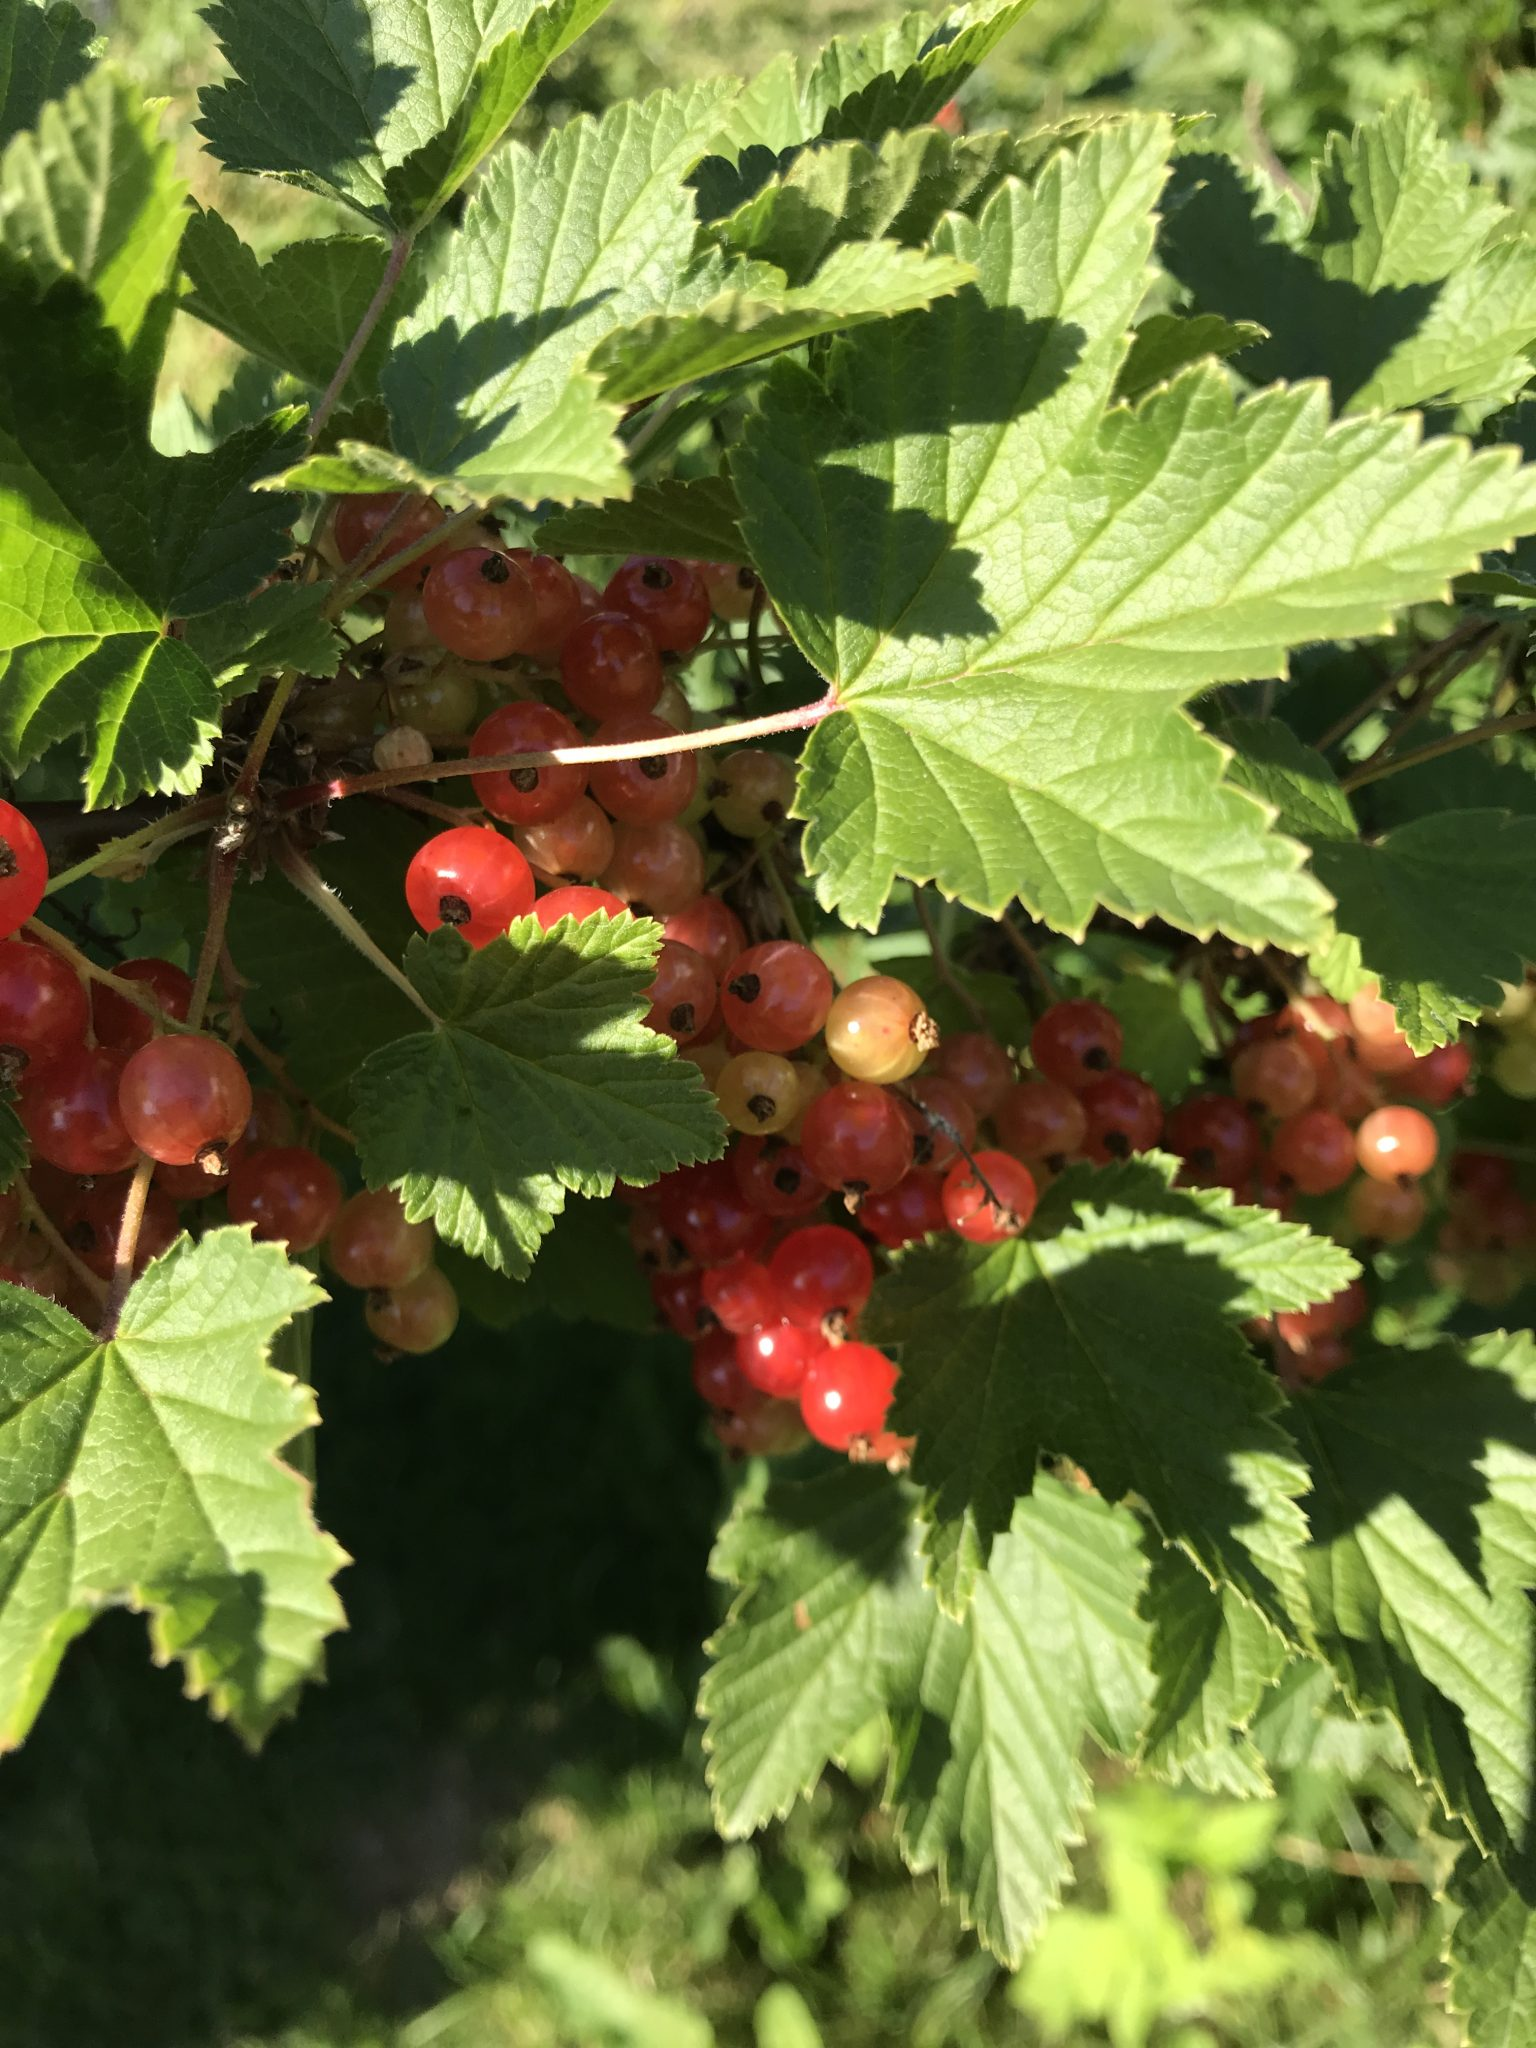 Our red currants are more than 20 years old. I will try to get some to grow in a hugelkultur bed next year.